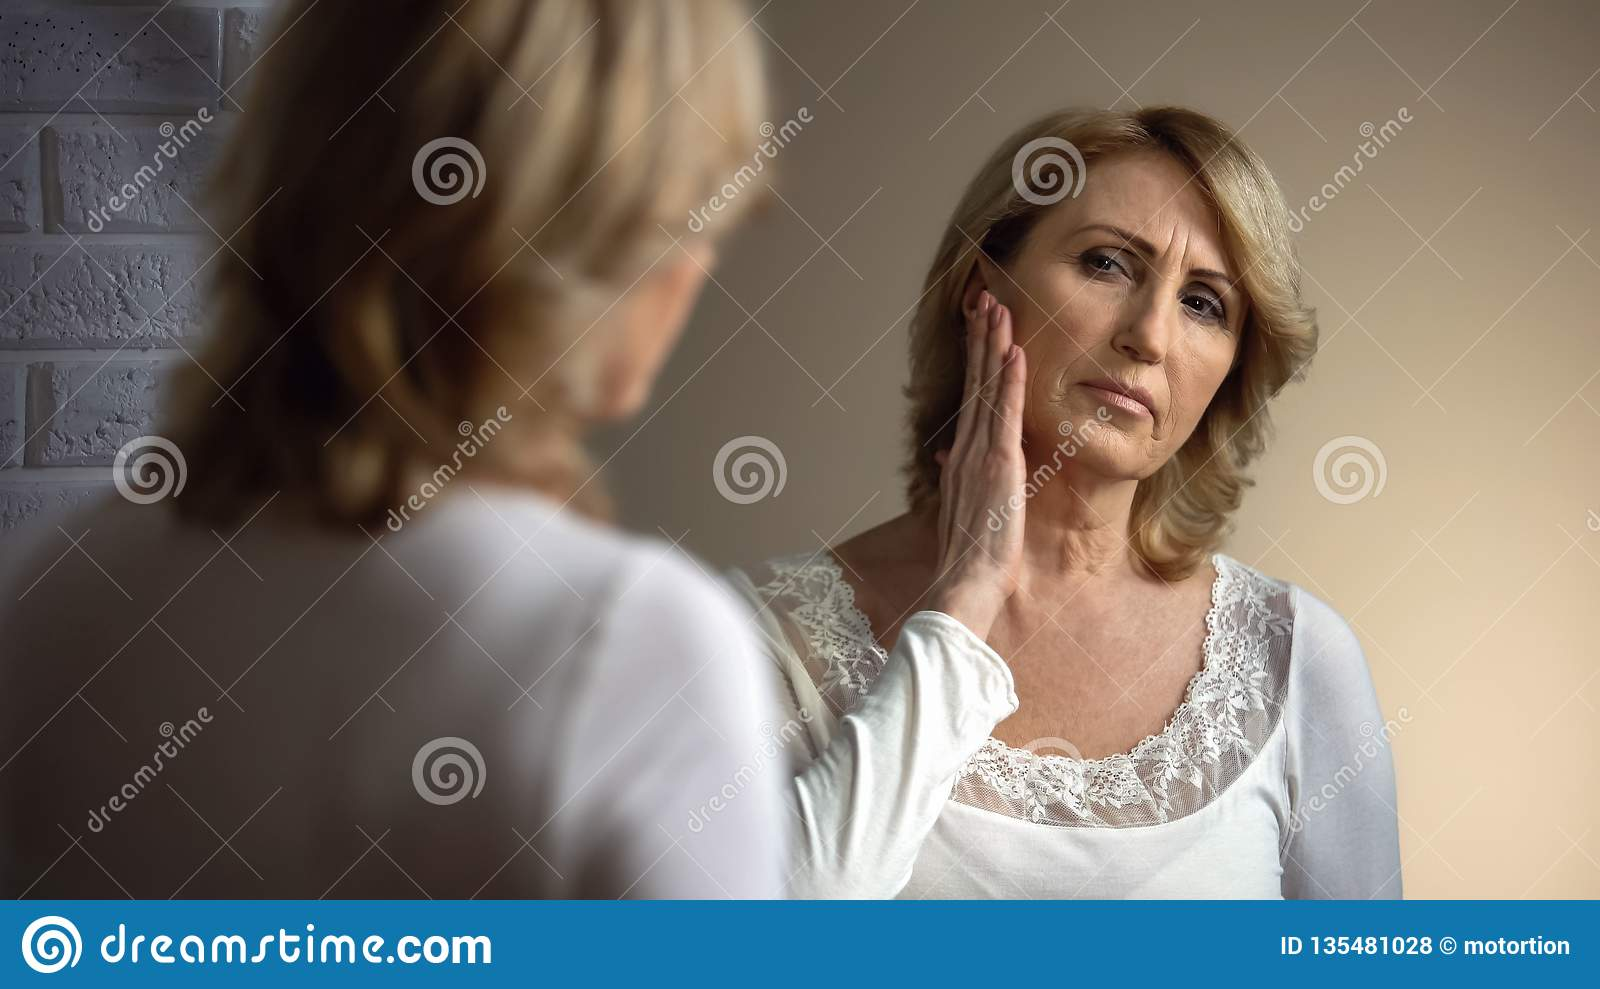 Depressed elderly woman looking in mirror, touching wrinkled face, lost beauty